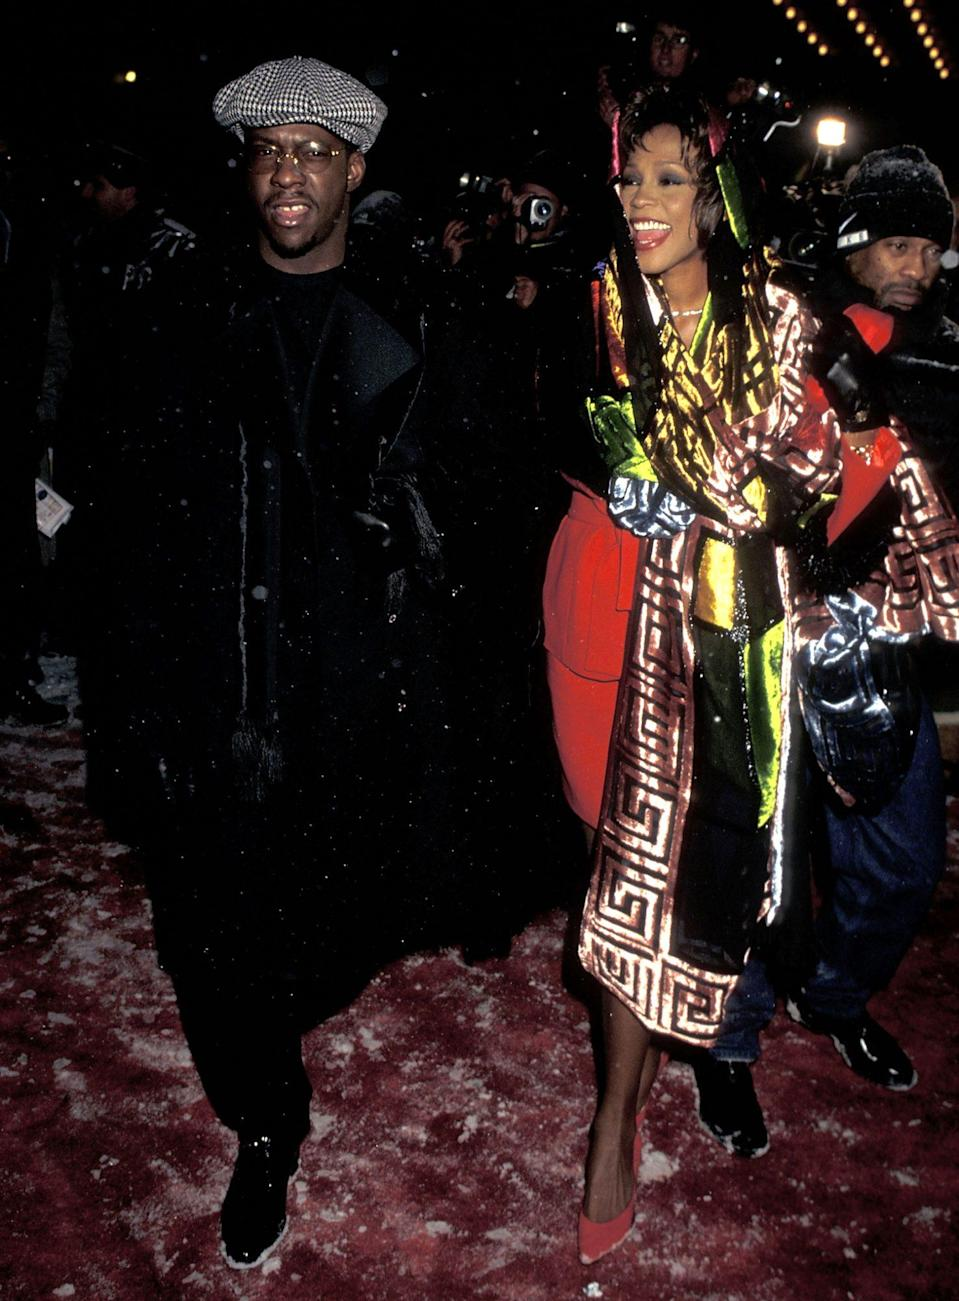 """<p>The late icon, whose song """"Exhale (Shoop Shoop)"""" was the lead single on the film's soundtrack, arrived looking radiant, draped in a metallic, multicolored shawl alongside her then-husband. </p>"""